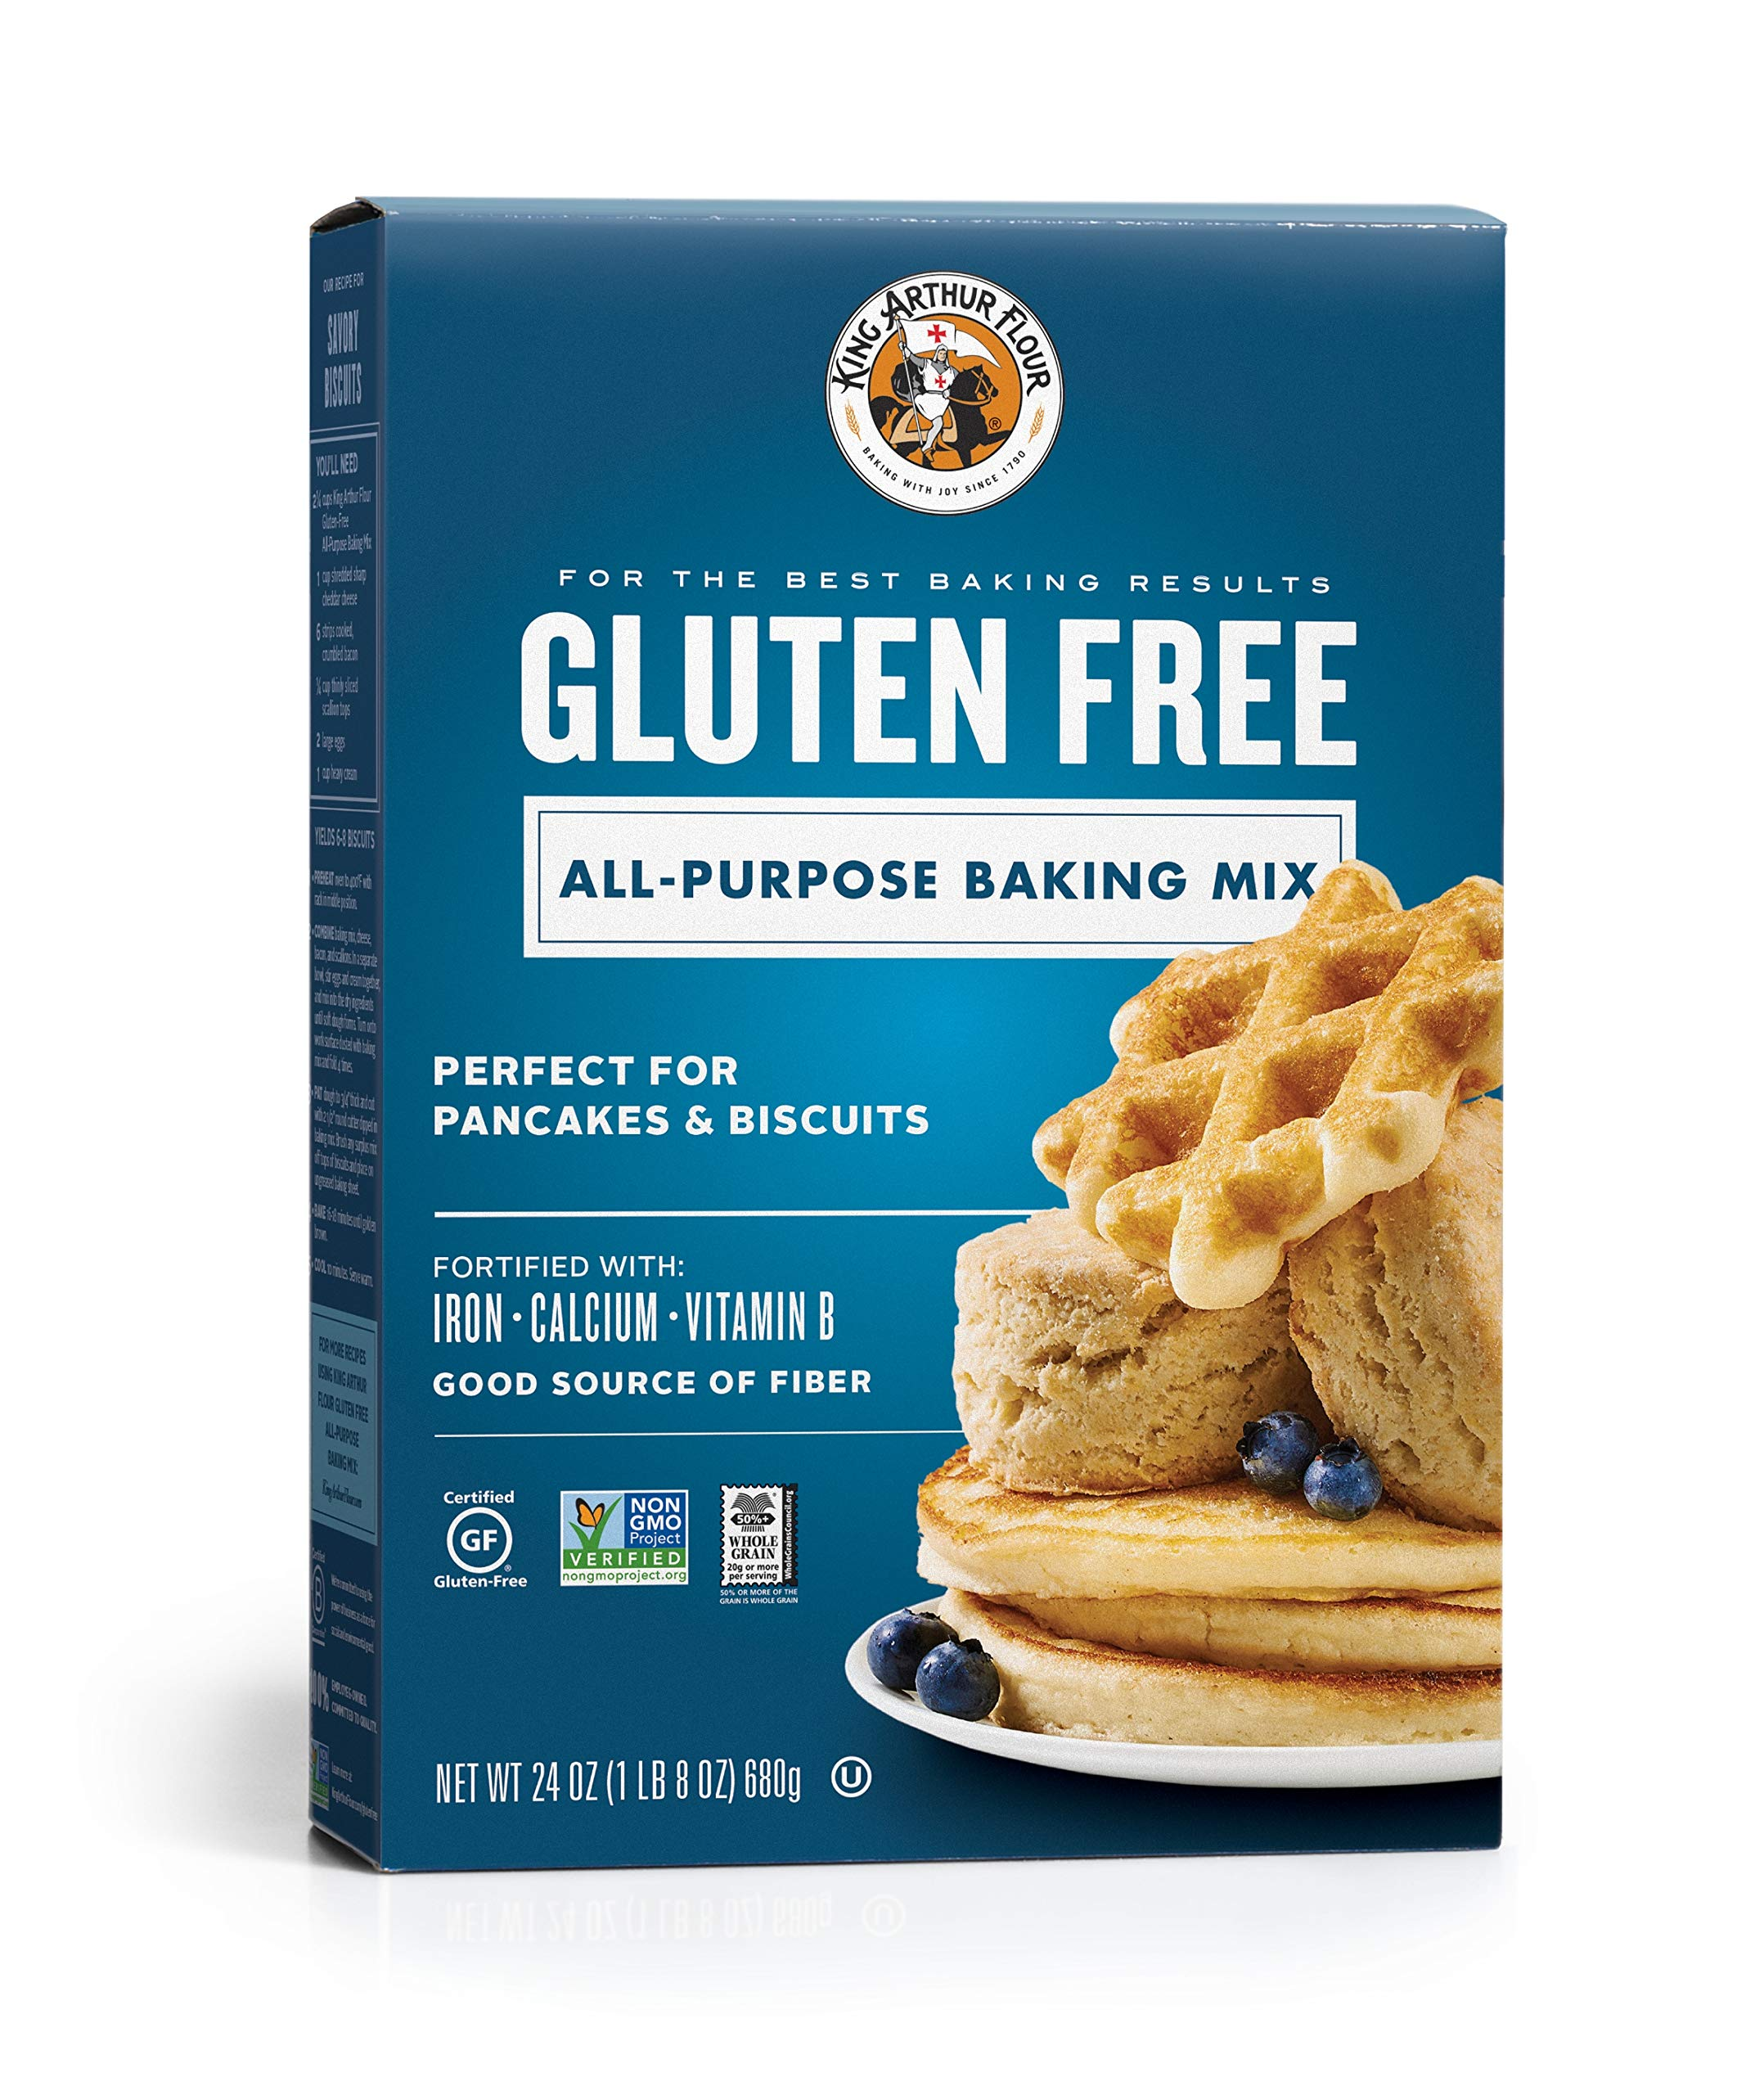 KING ARTHUR FLOUR Gluten Free All-Purpose Baking Mix, 24 Ounce, Pack of 6 by King Arthur Flour